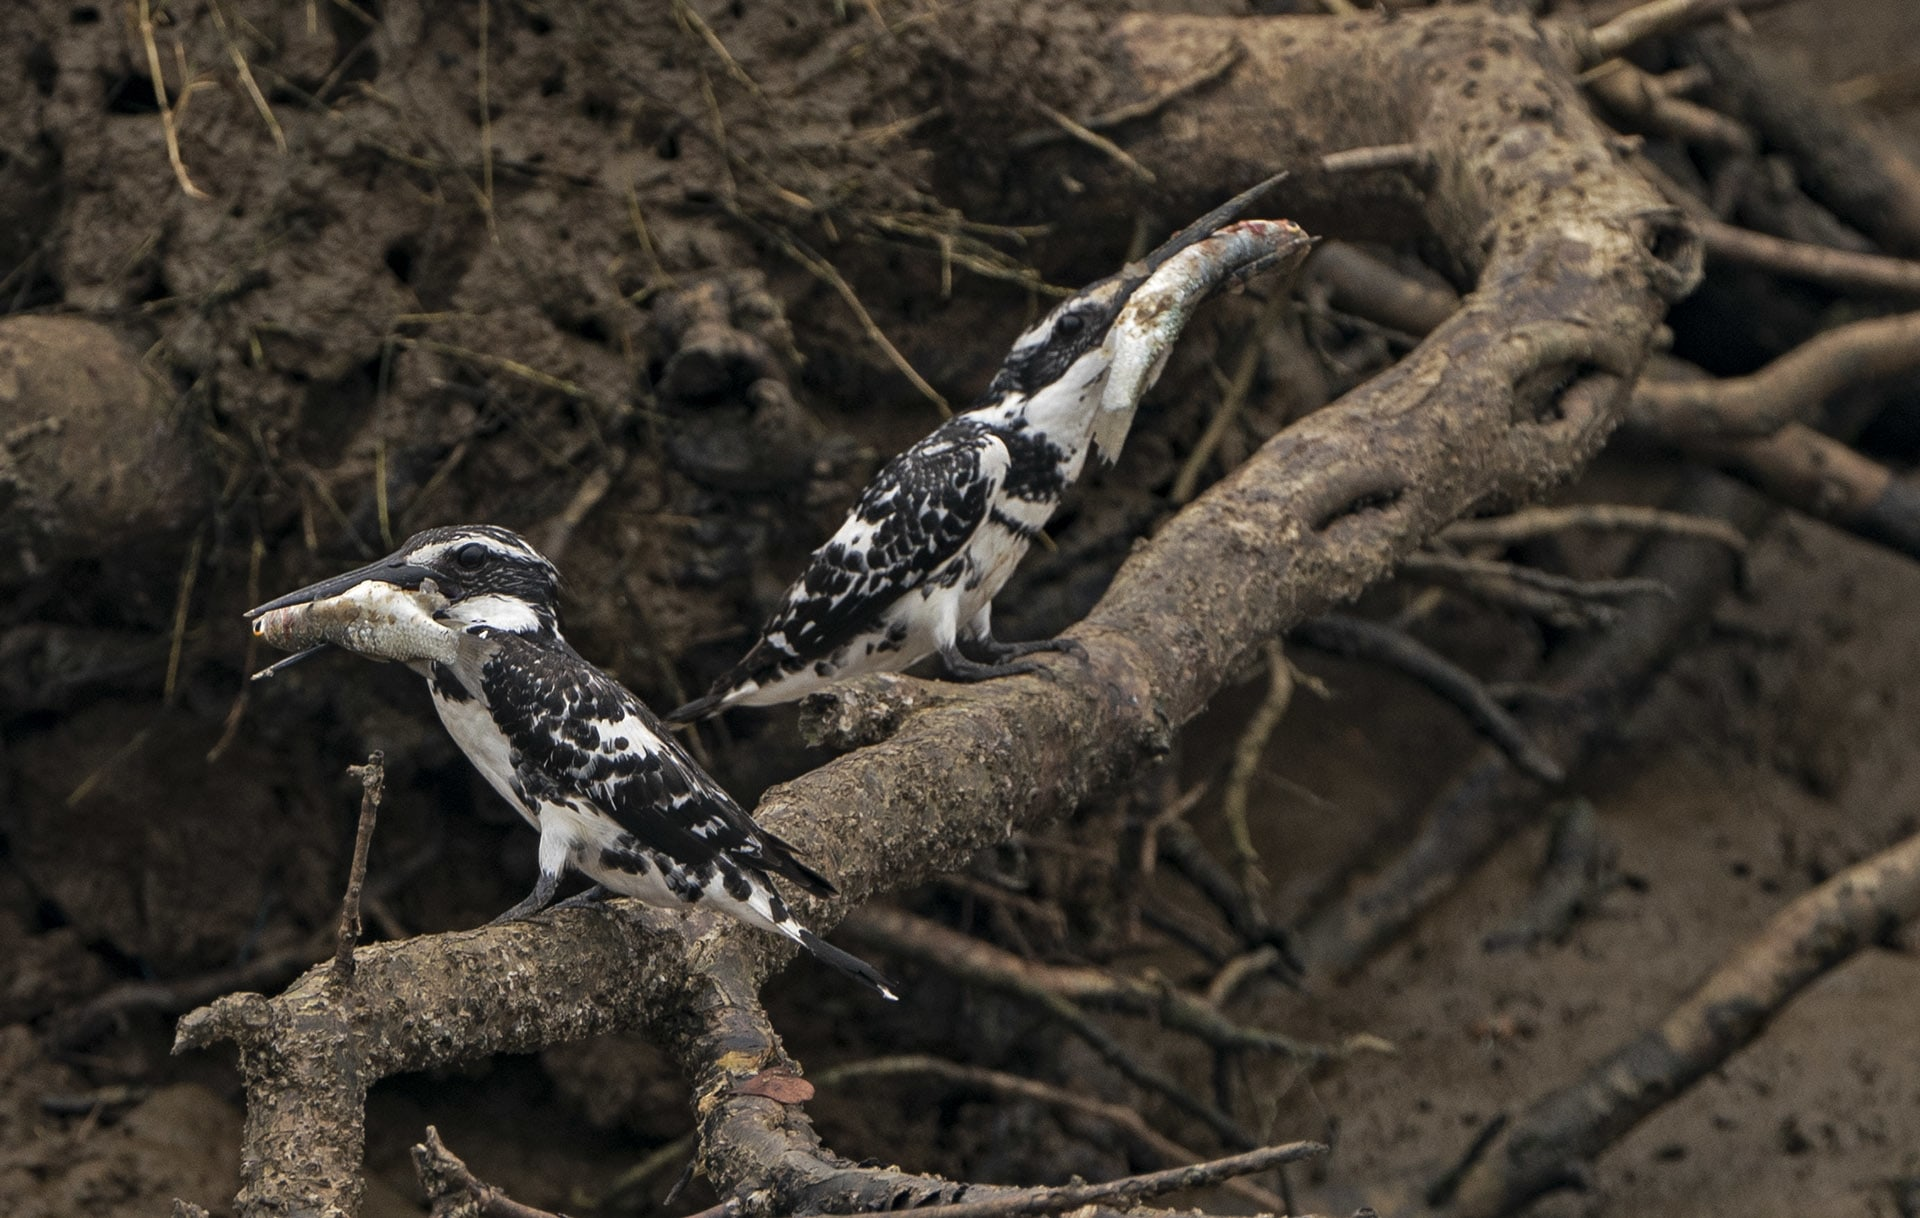 The pied kingfisher hunts in an unusual way. It hovers up to fifty feet above the river and makes a straight 90-degree head-first dive into the water to get hold of fish.